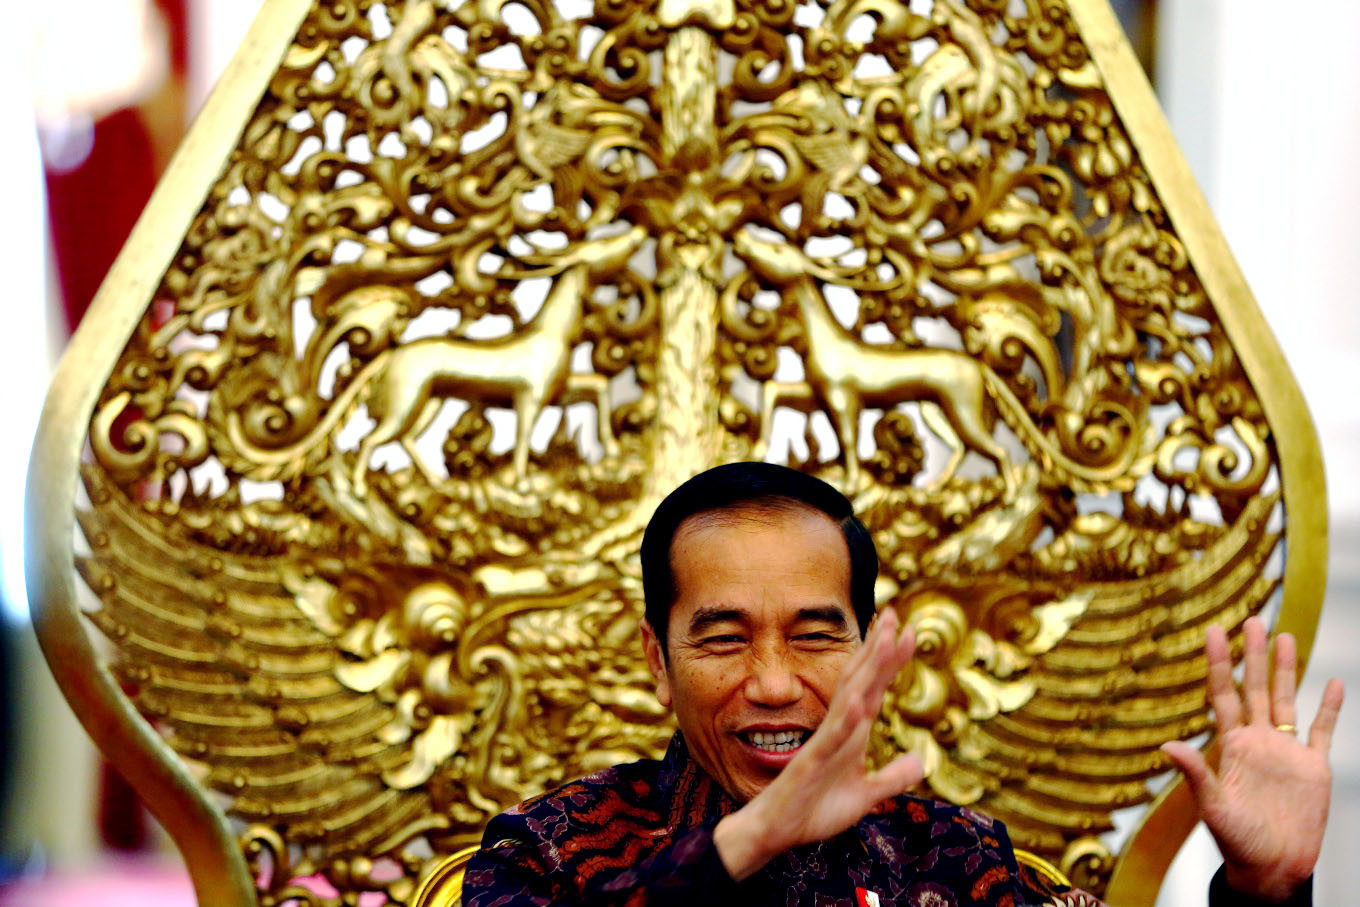 Jokowi hosts Independence Day-themed photo contest on Instagram